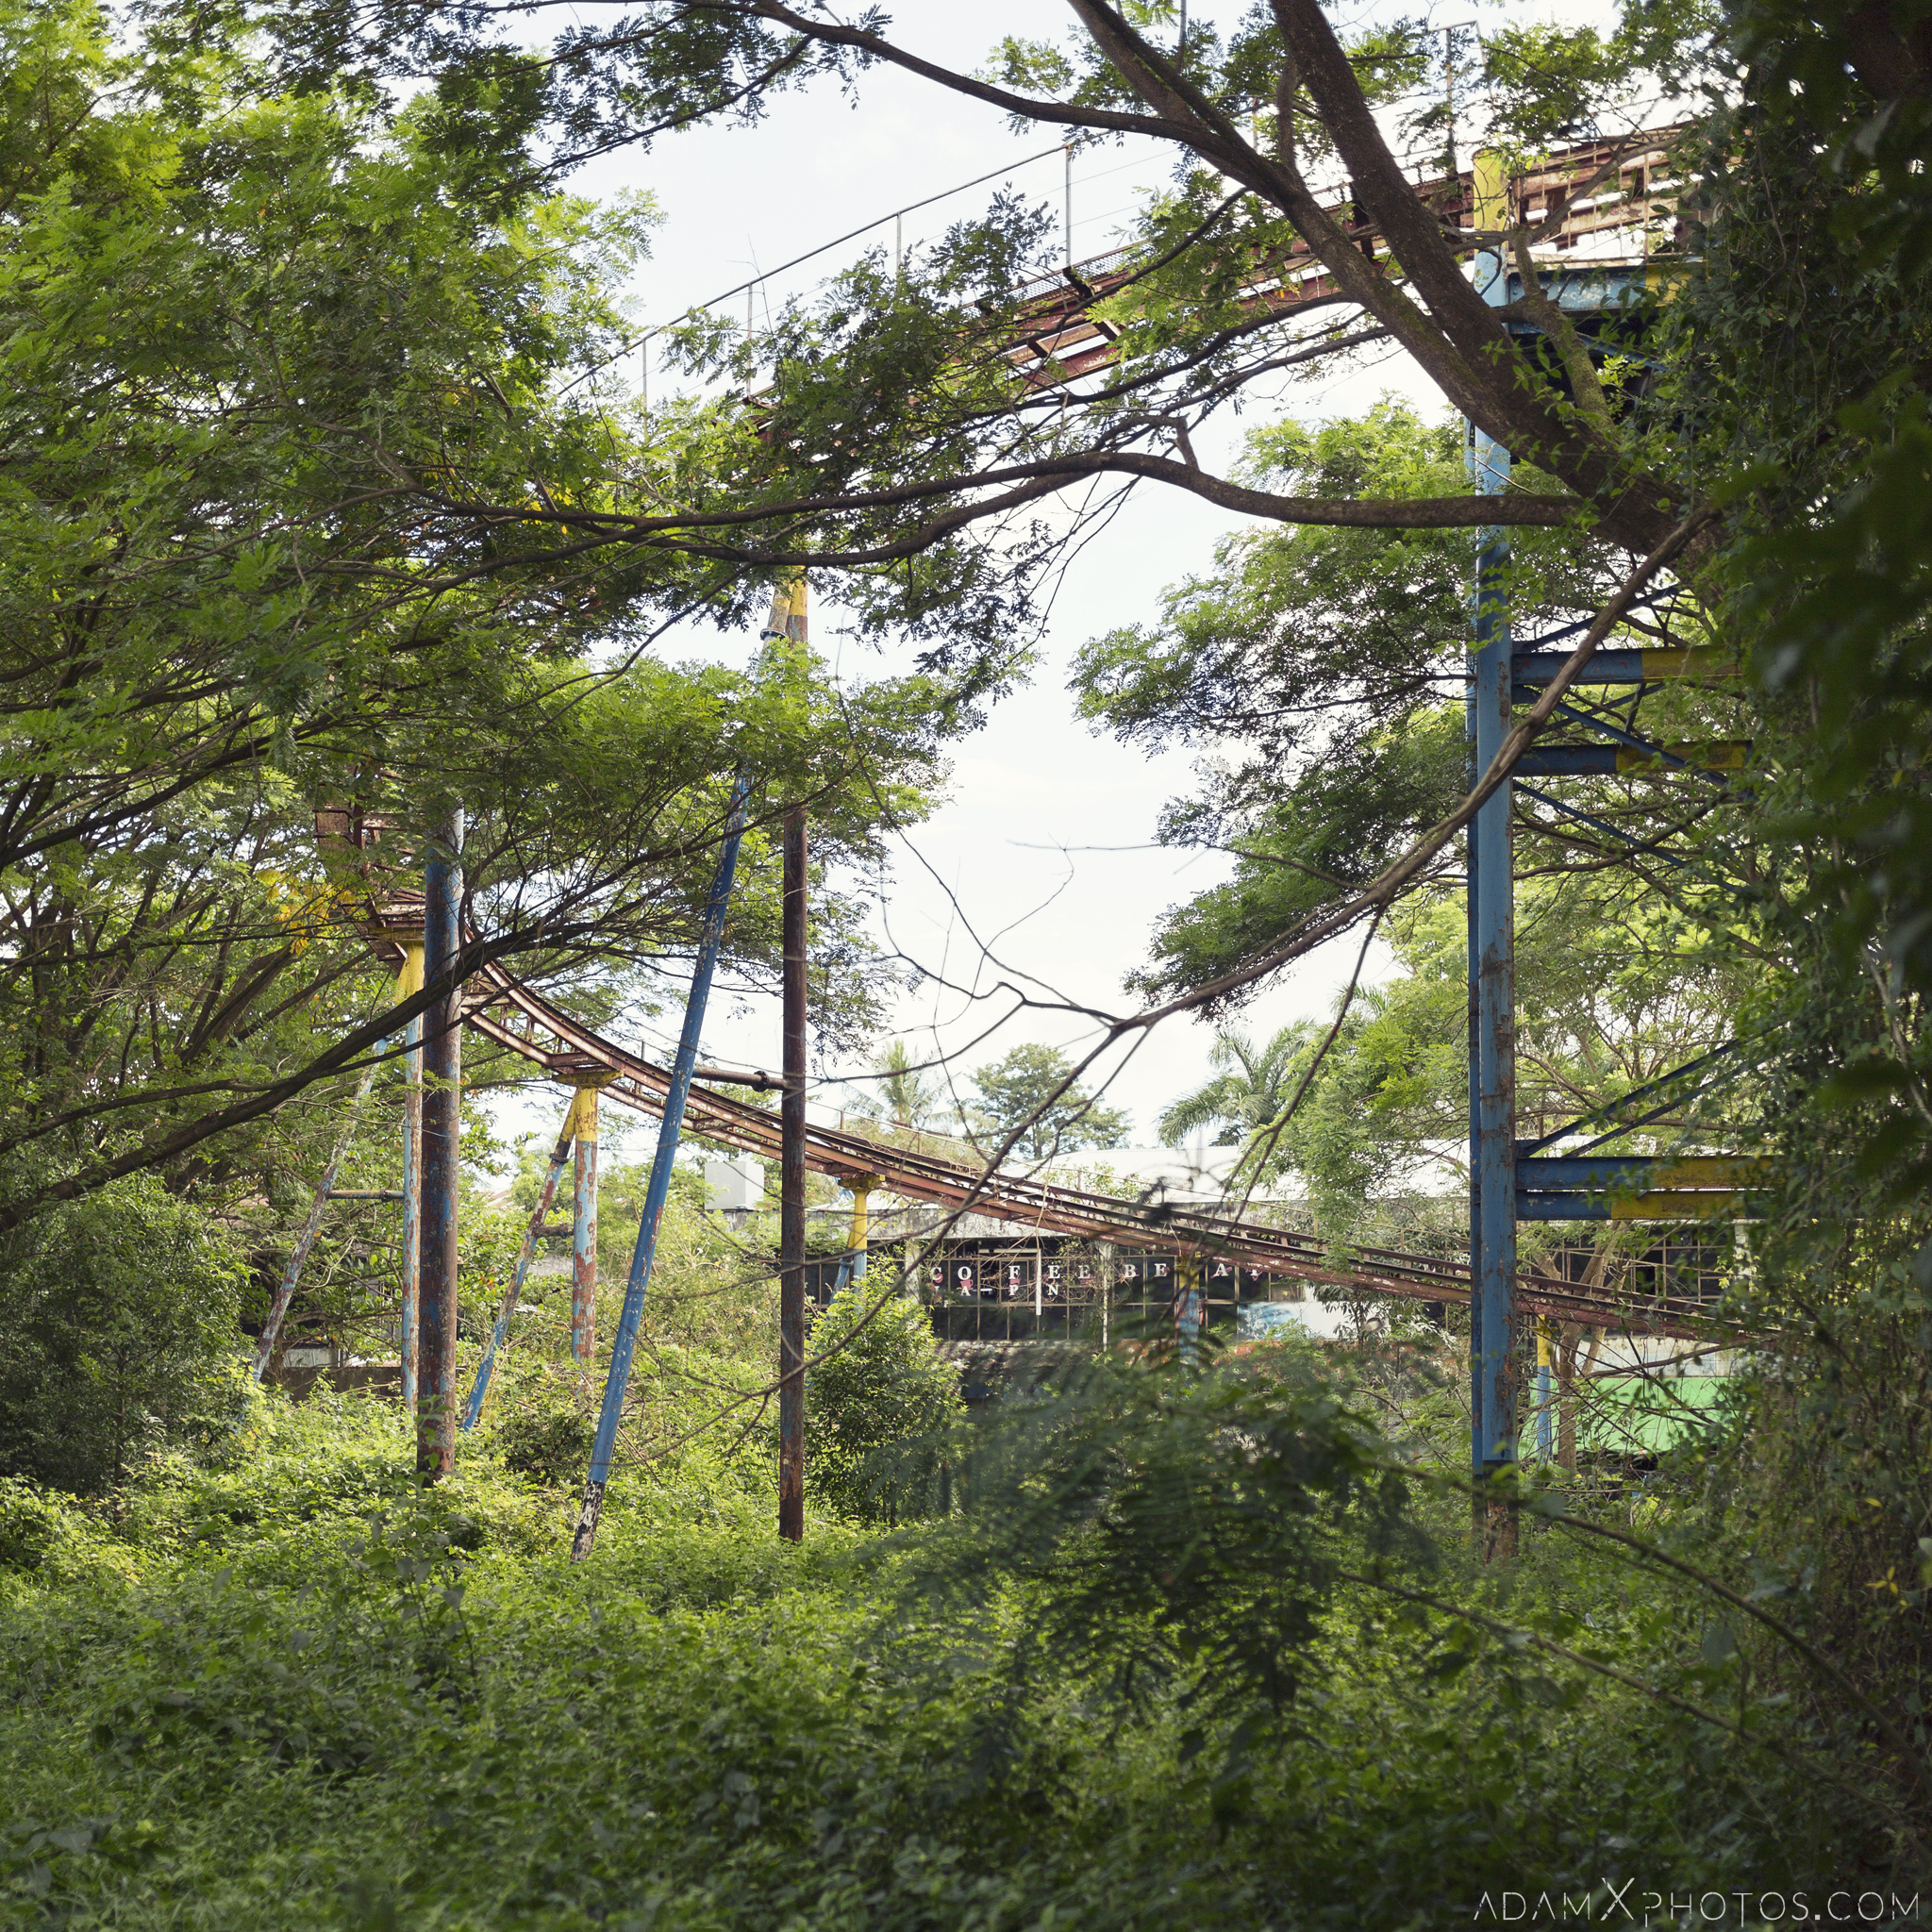 Jungle overgrown rollercoaster Happy World Theme Park Amusement Park Fairground Myanmar Burma Yangon Rangoon Urbex Adam X Urban Exploration Access 2016 Abandoned decay lost forgotten derelict location creepy haunting eerie